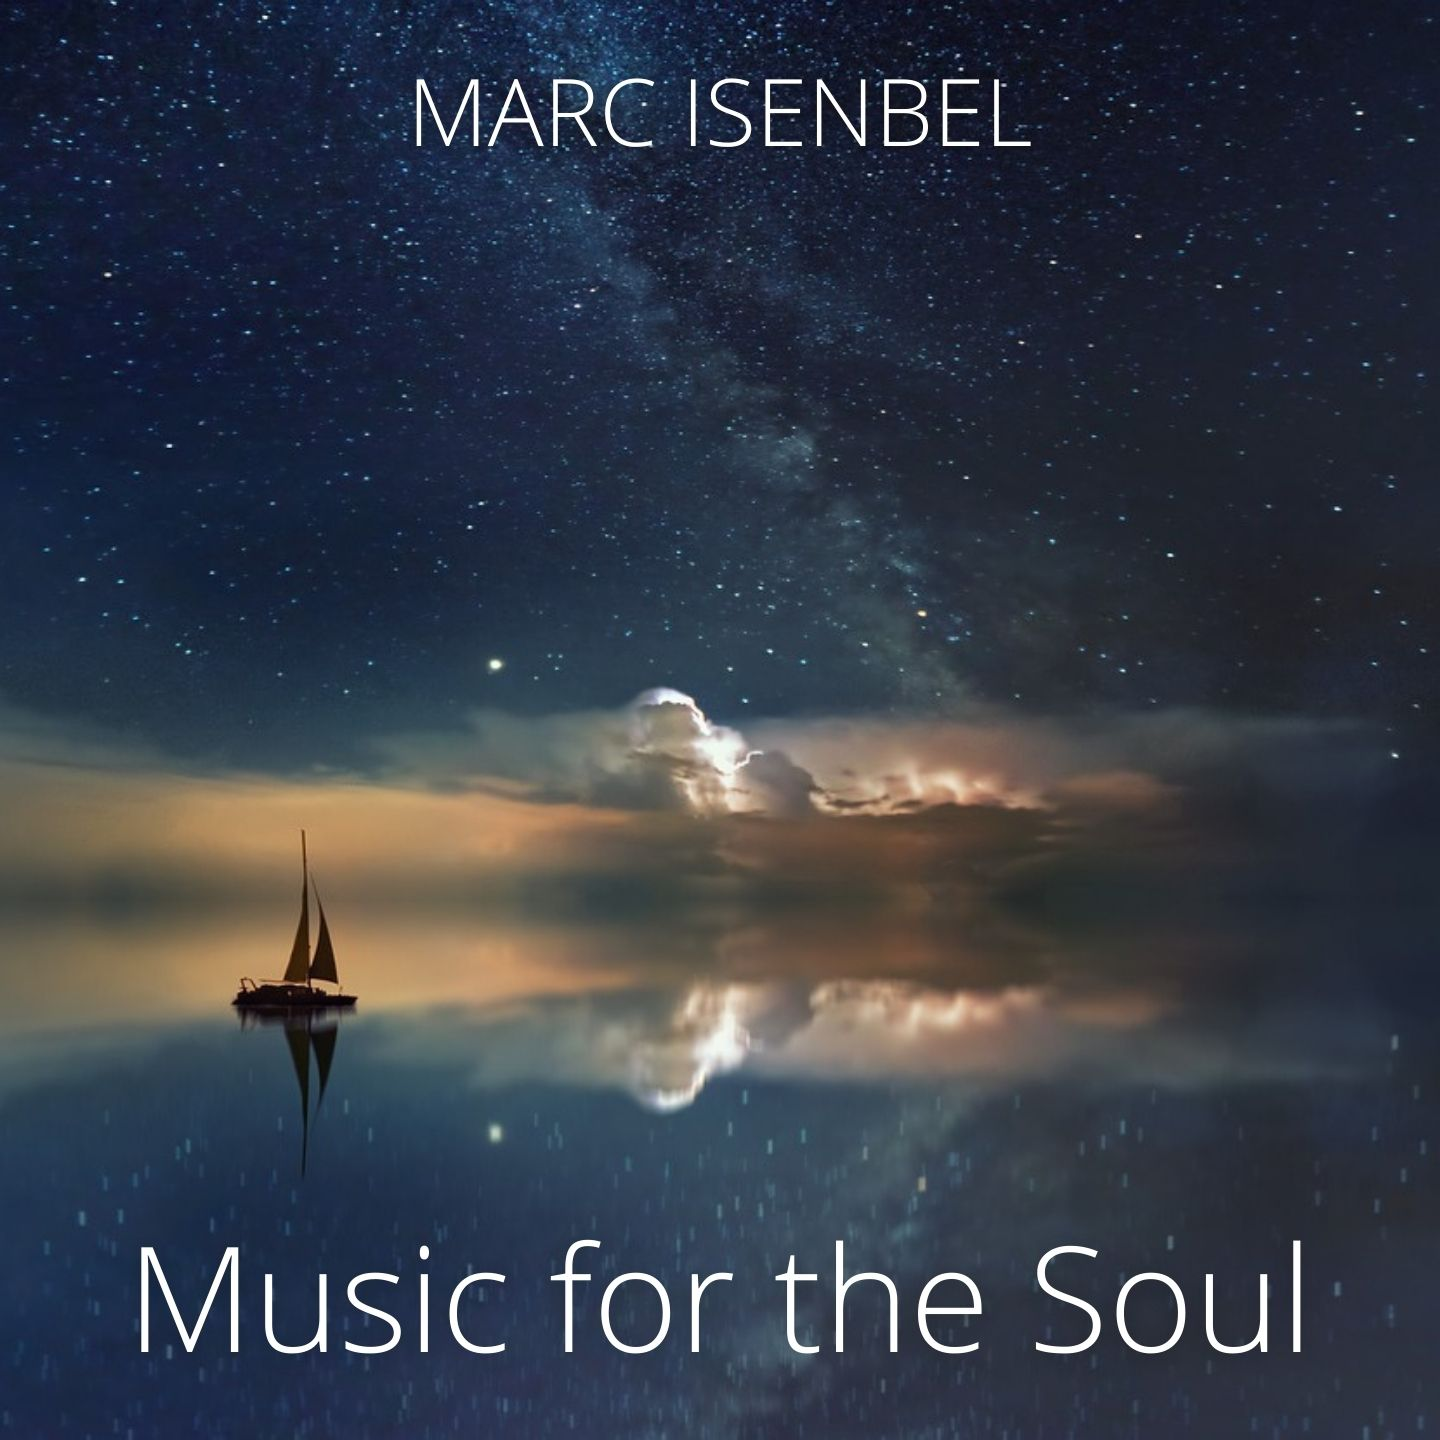 (Music) for the Soul